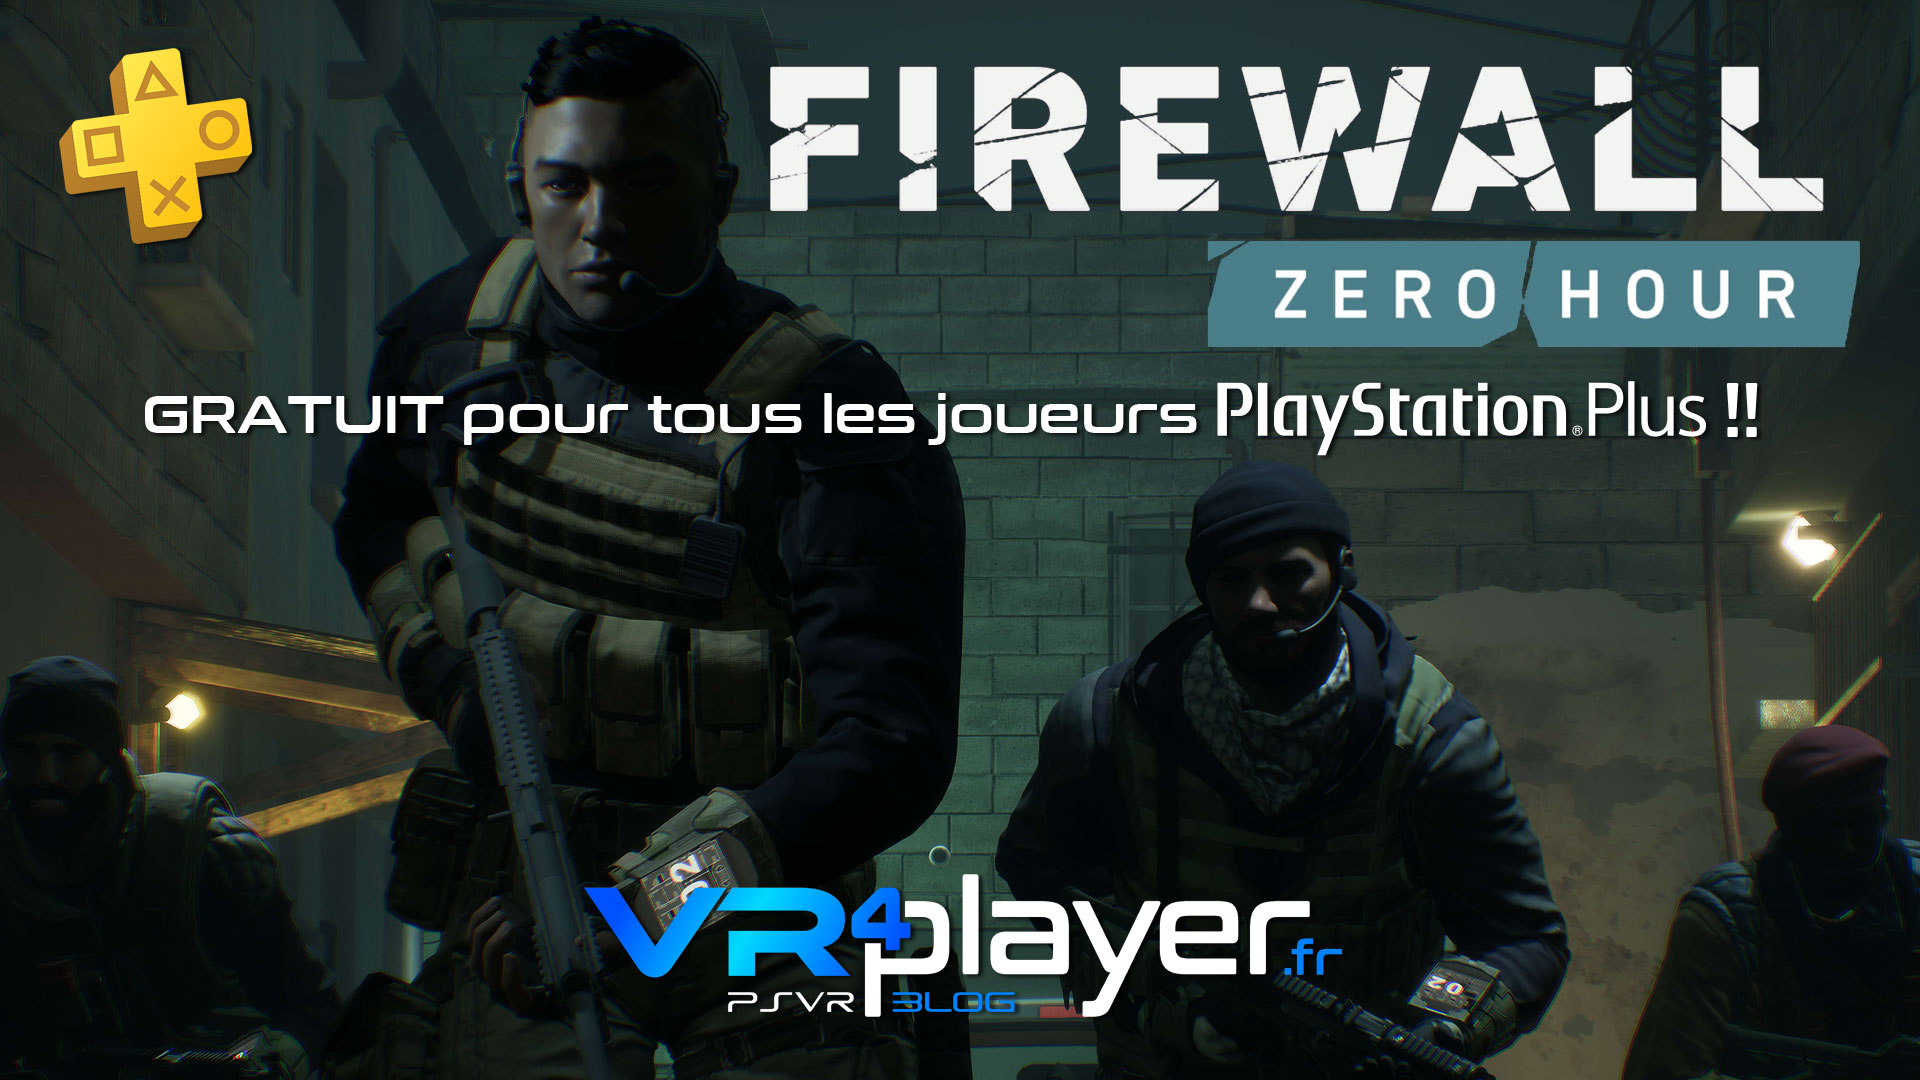 Firewall Zero Hour gratuit ce week-end sur PSVR - vr4player.fr